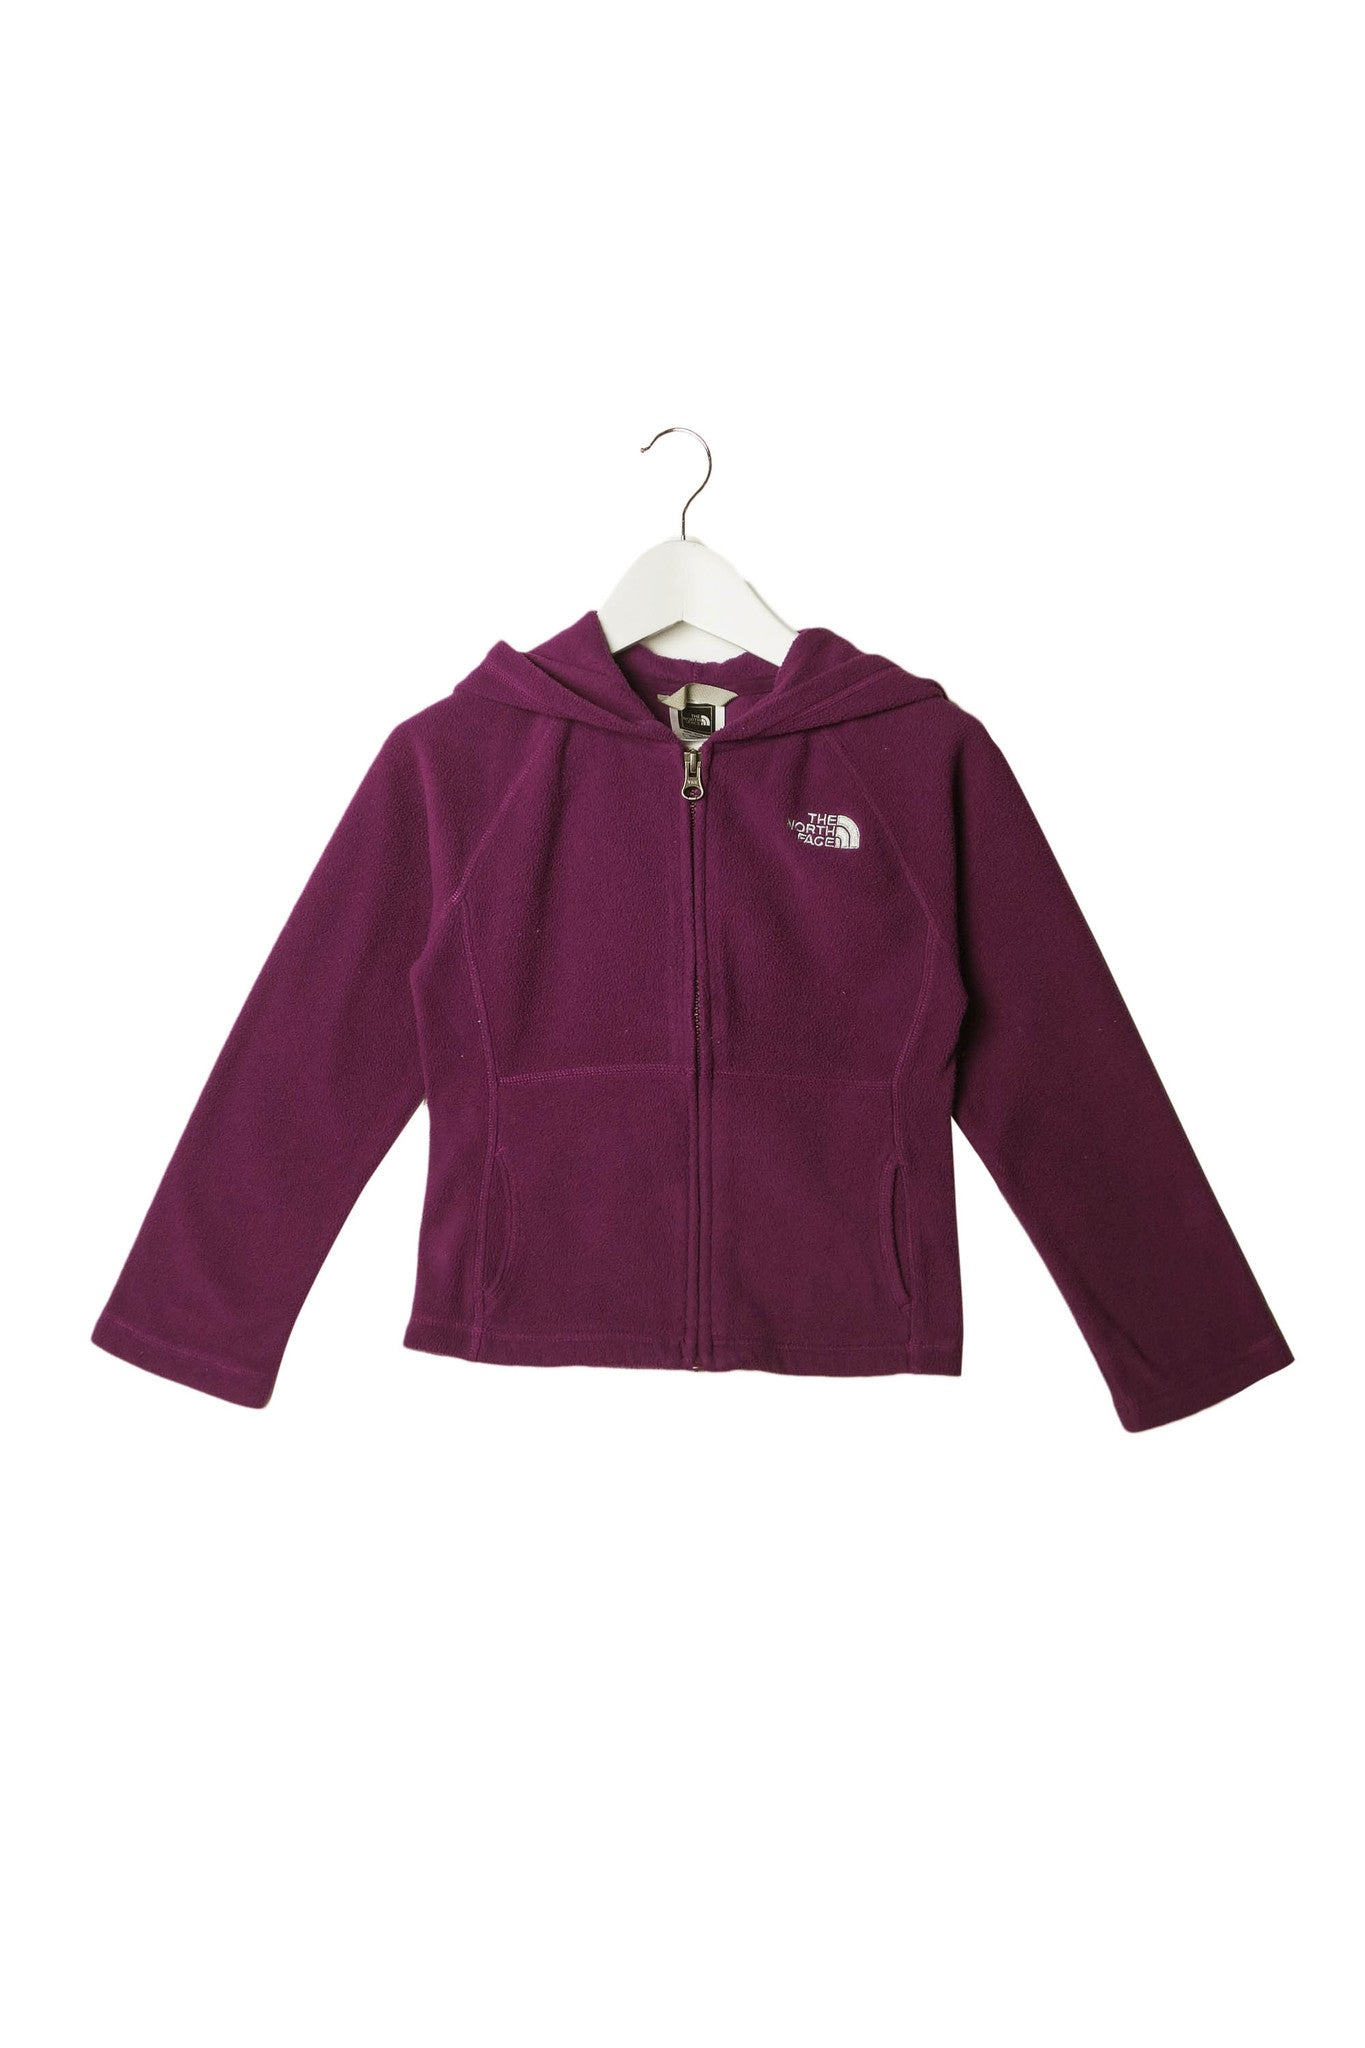 10003175 The North Face Kids~Jacket 5T at Retykle